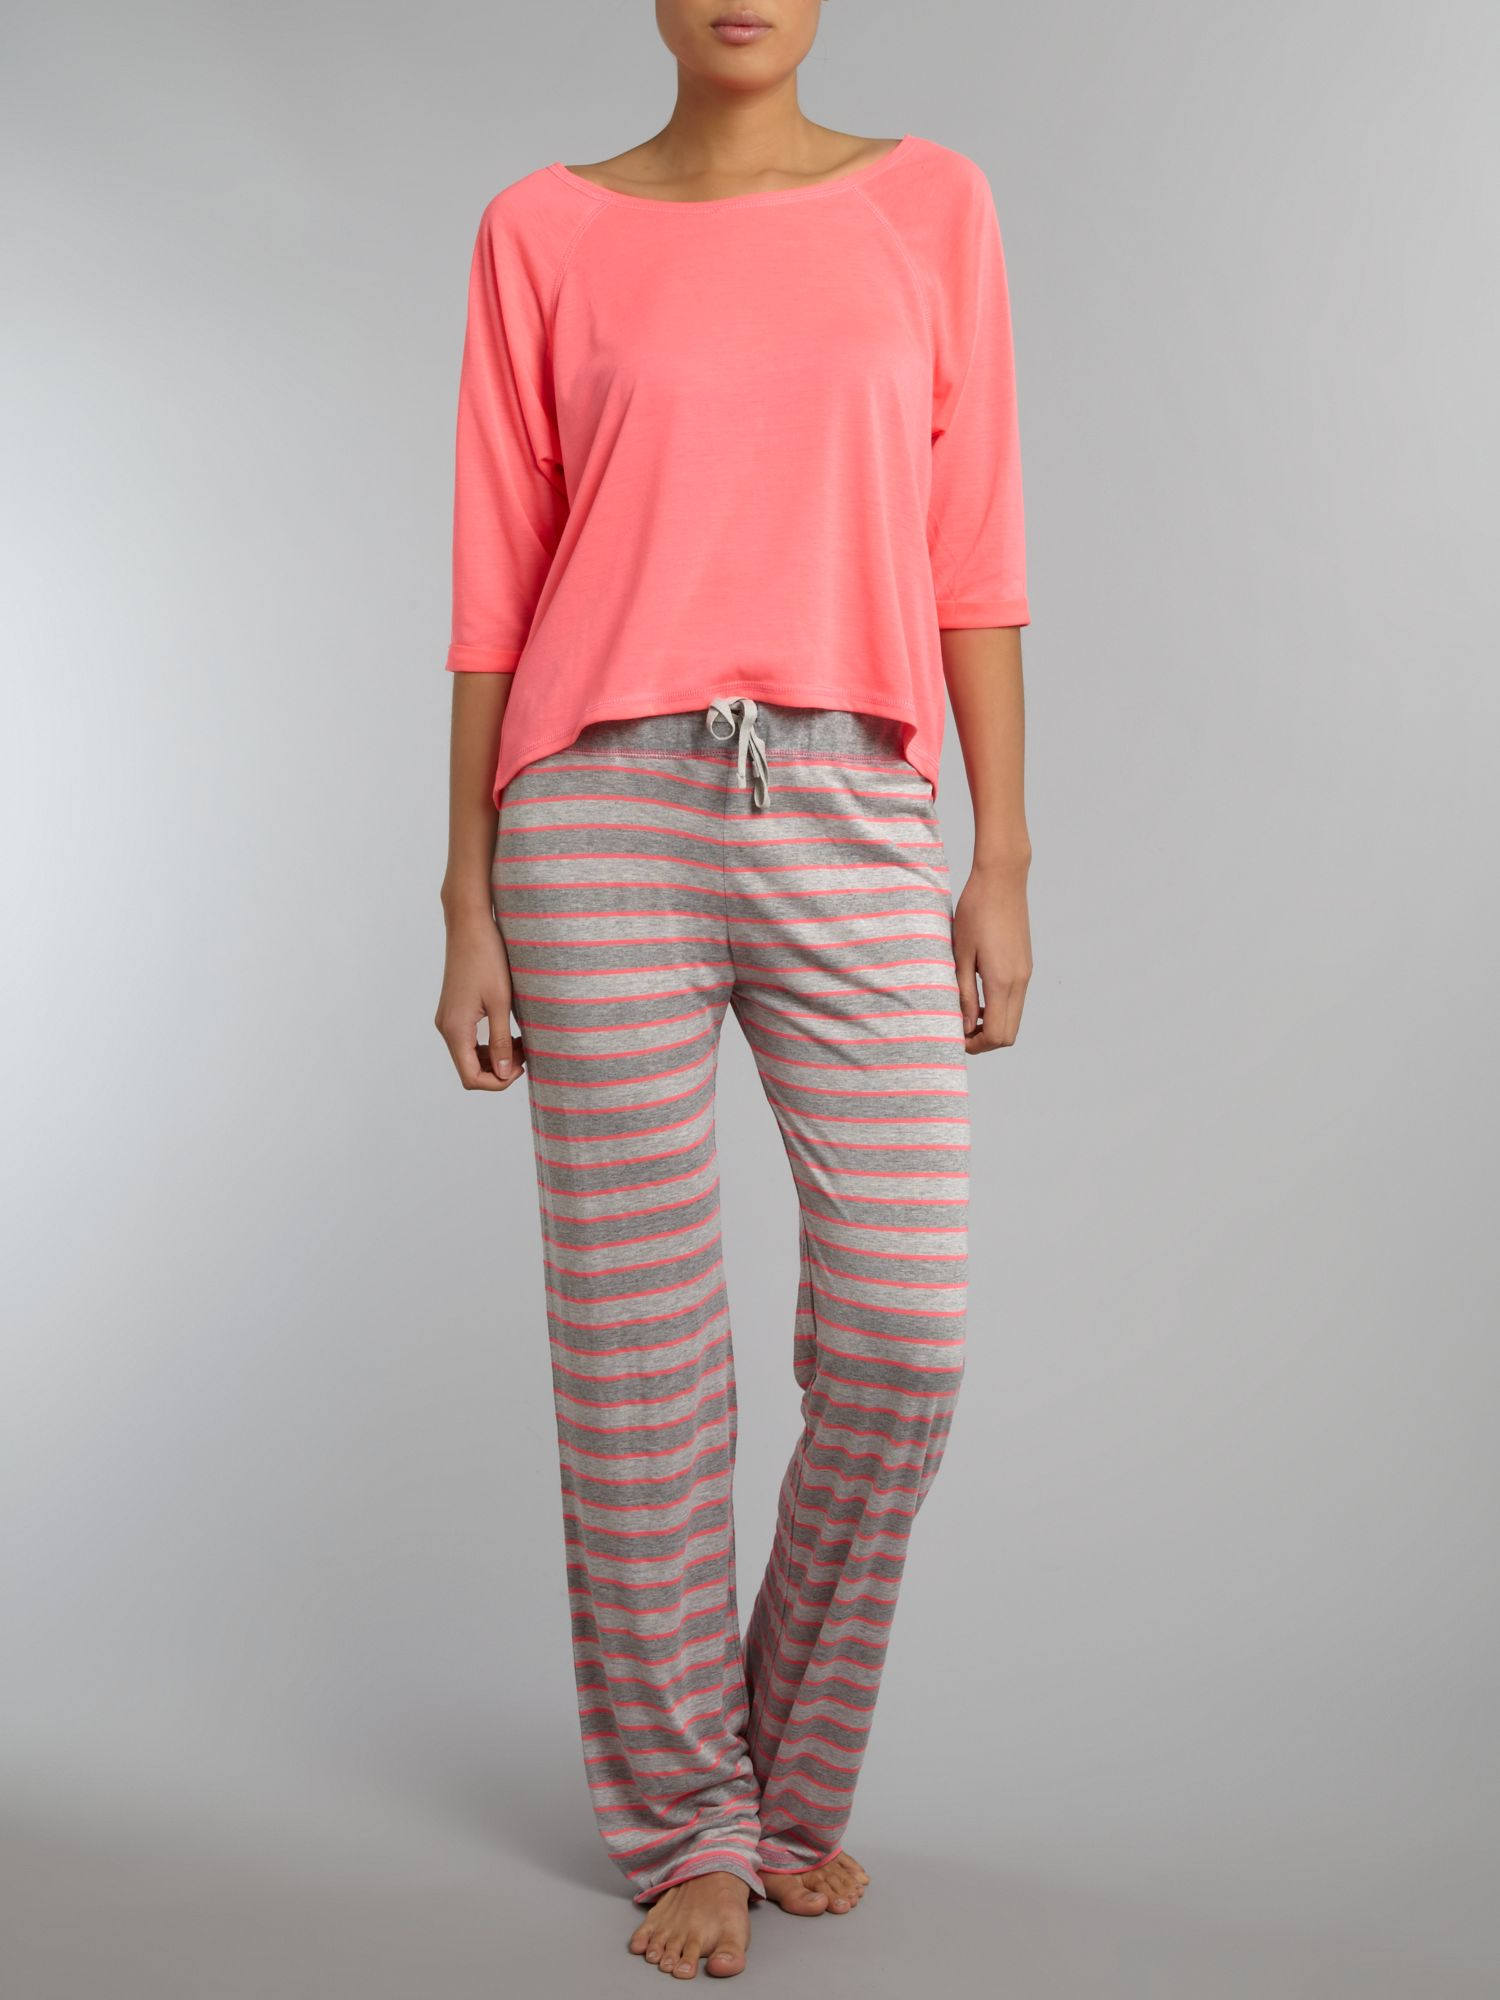 Stripe pant and plain vest pj set